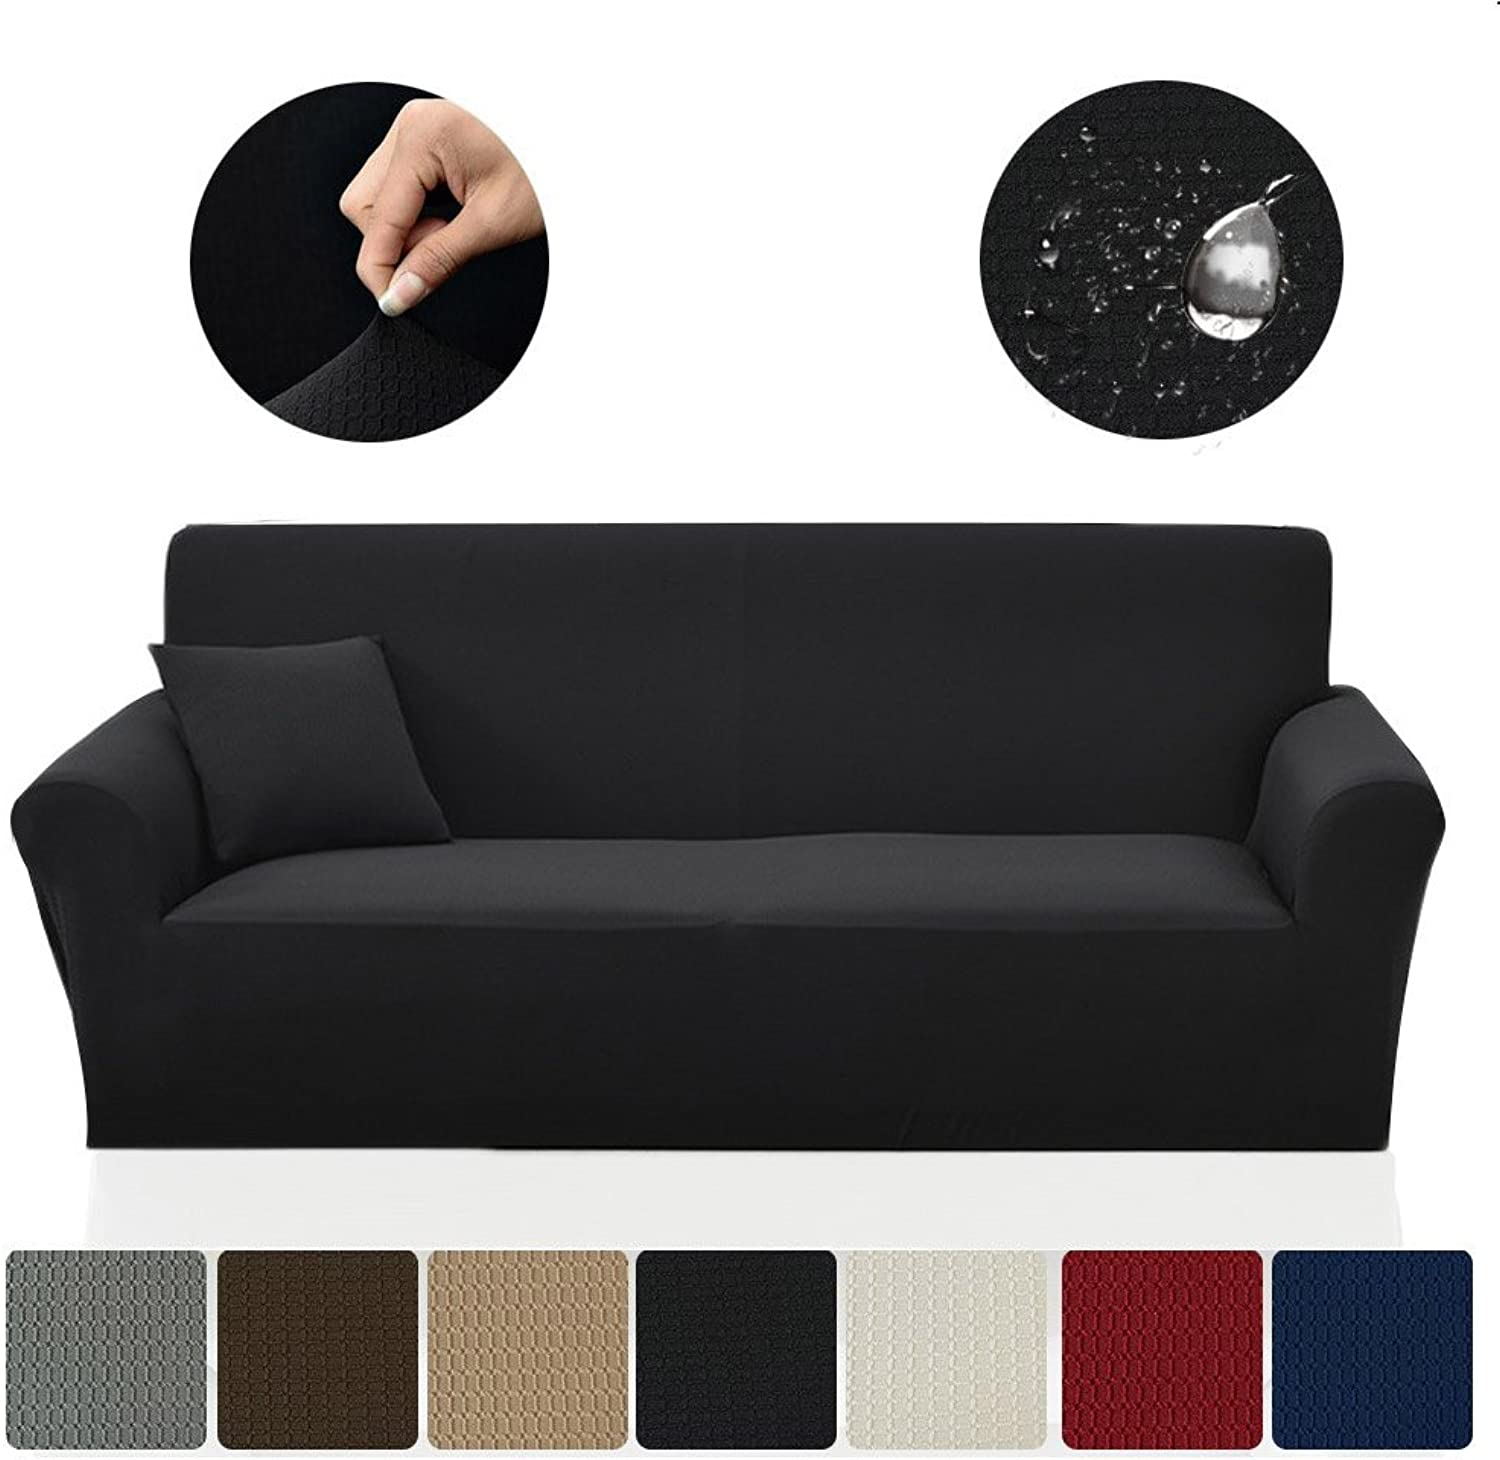 SAXTX Stretch Couch Slipcover, Waterproof Non-Slip Sofa Covers, Stains Resistant Prevent Scratches Furniture Cover Pets, Cats, Kids (XL Sofa, Black)